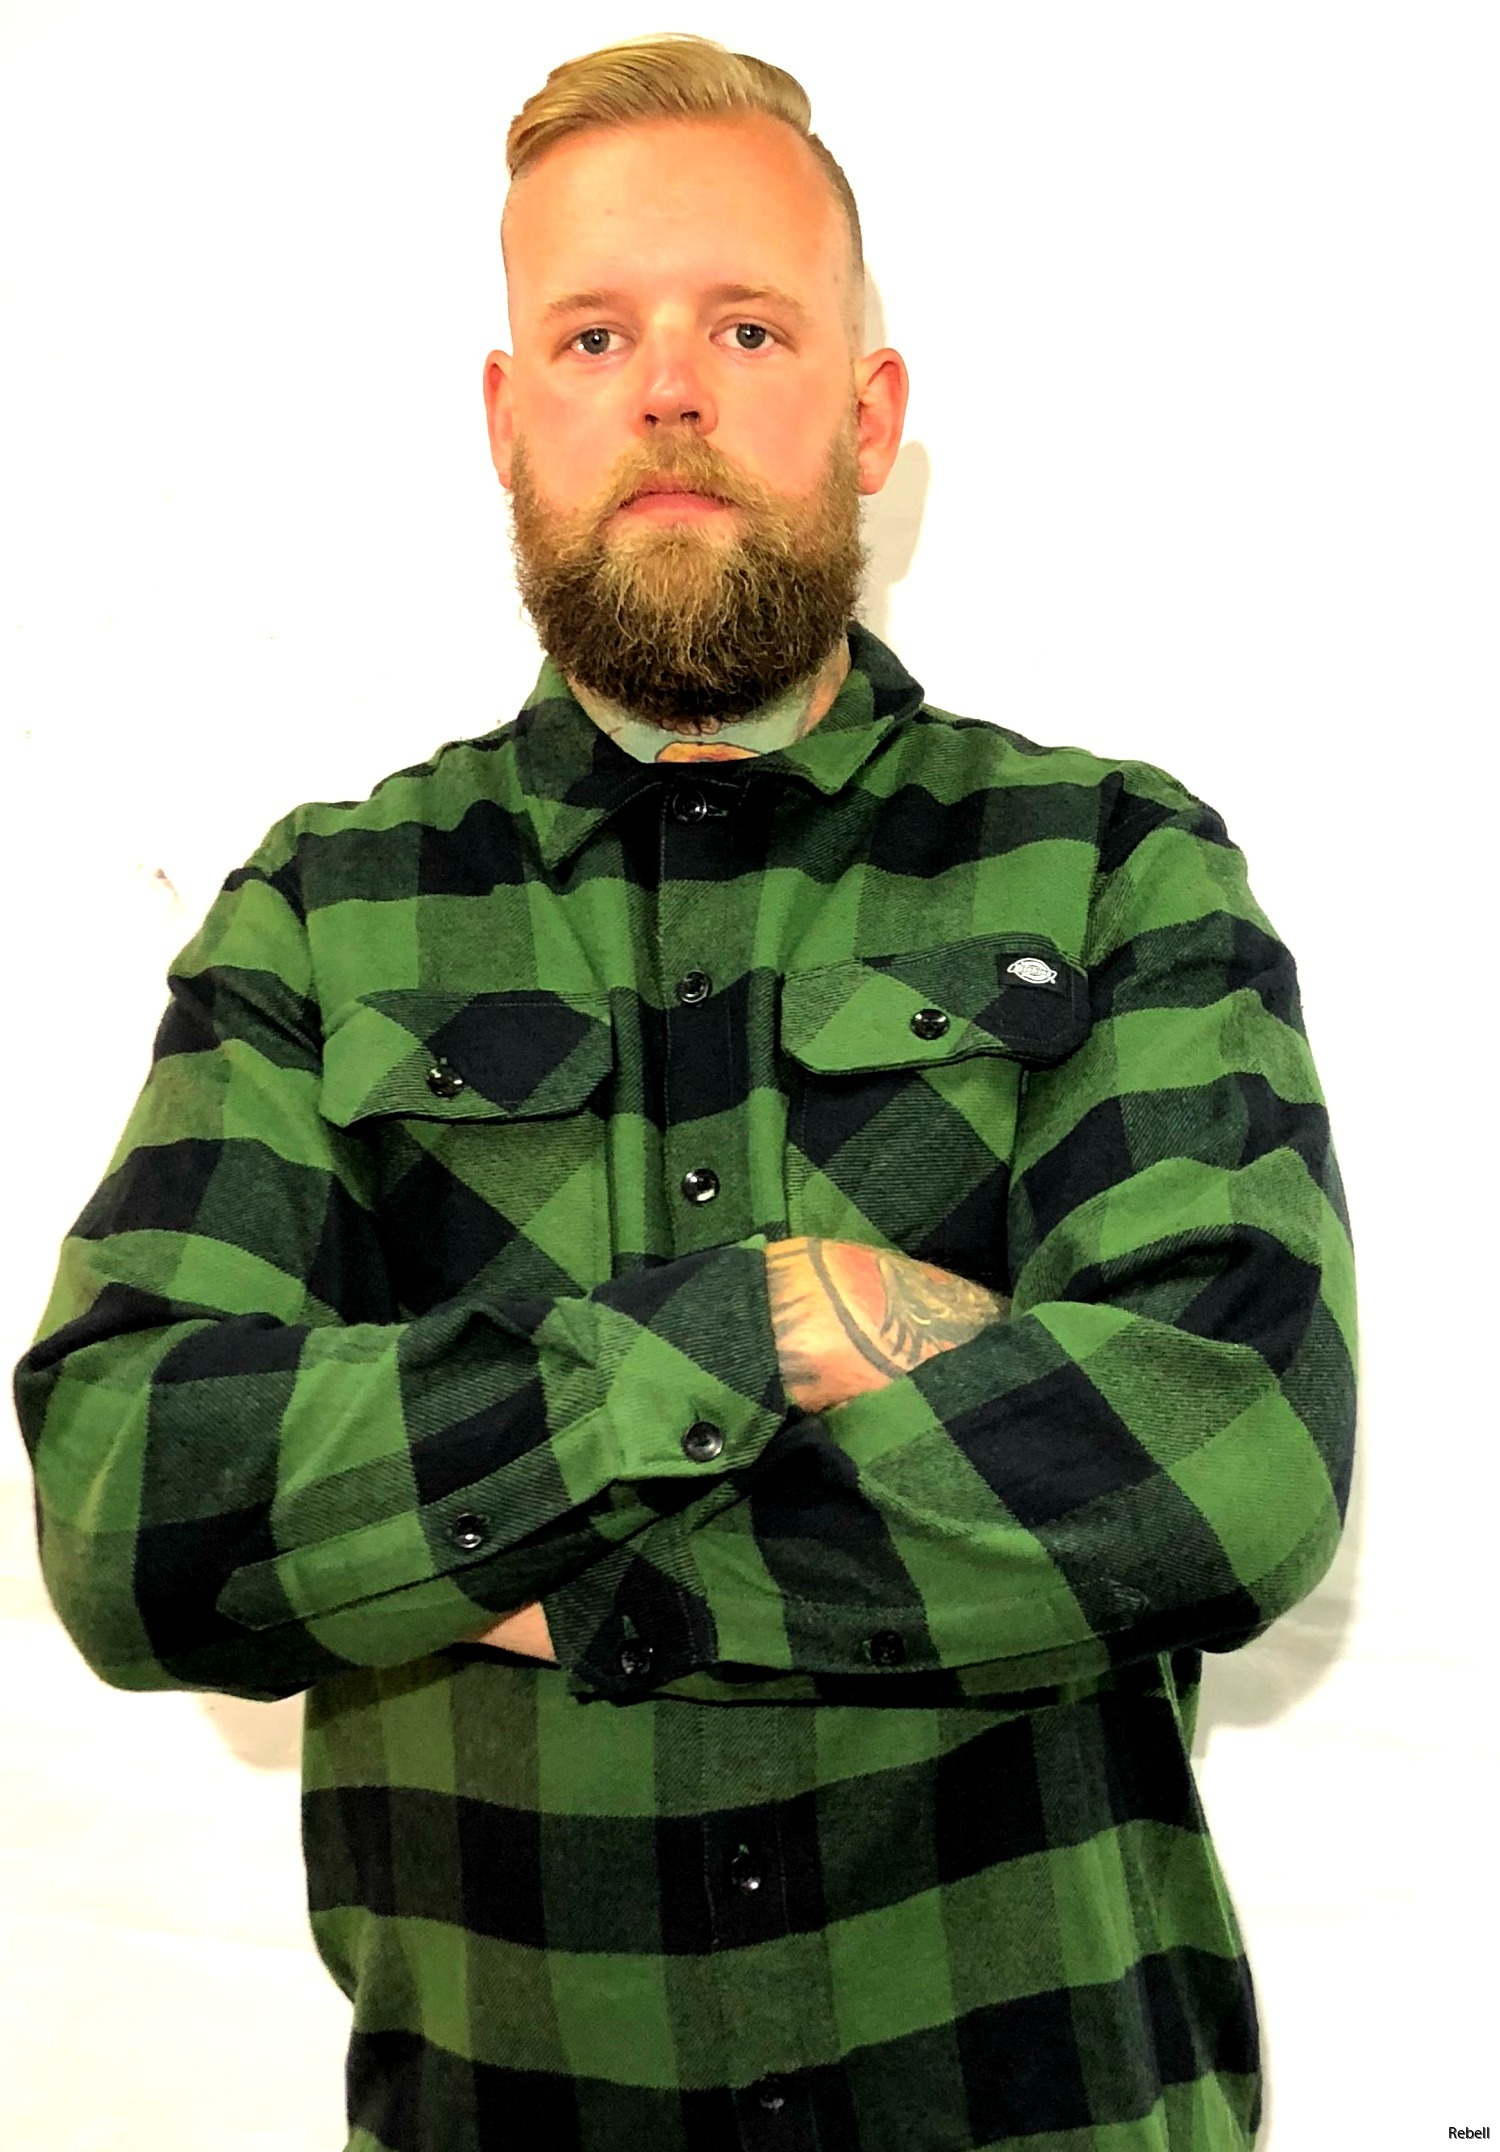 dickies dickiesflanell Pinegreen pine grönflanell rebell rebellclothes art